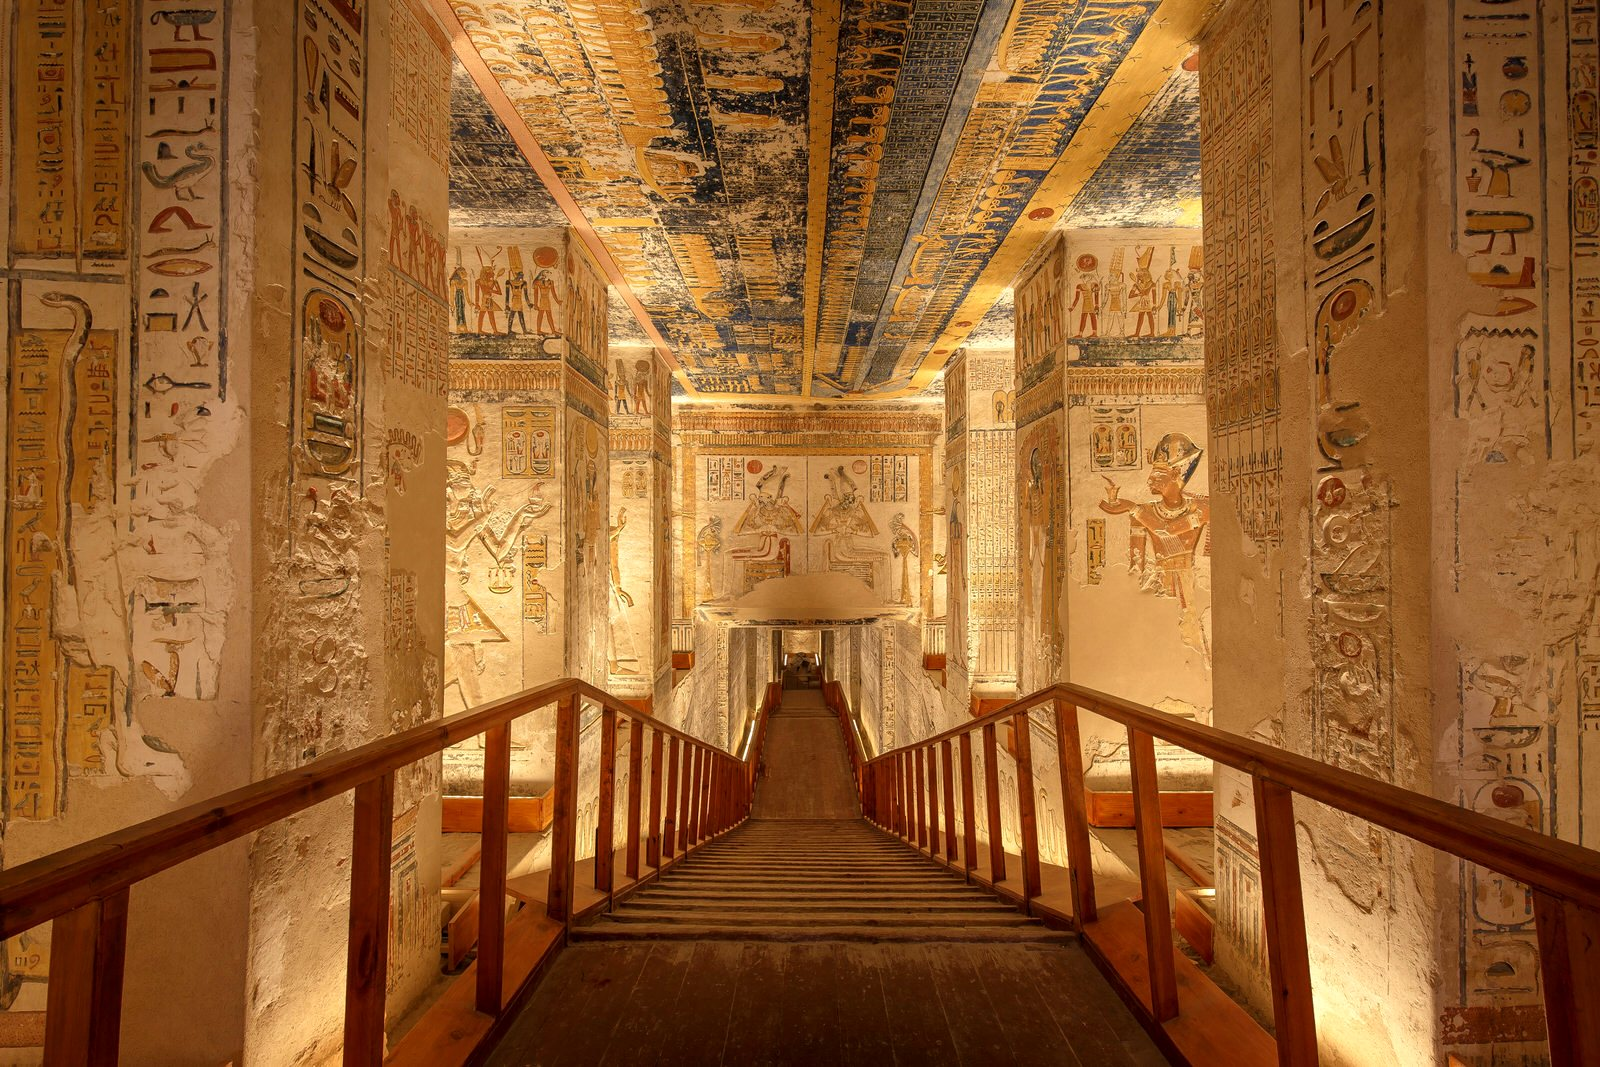 The tomb of Ramses VI in the Valley of the Kings, Egypt